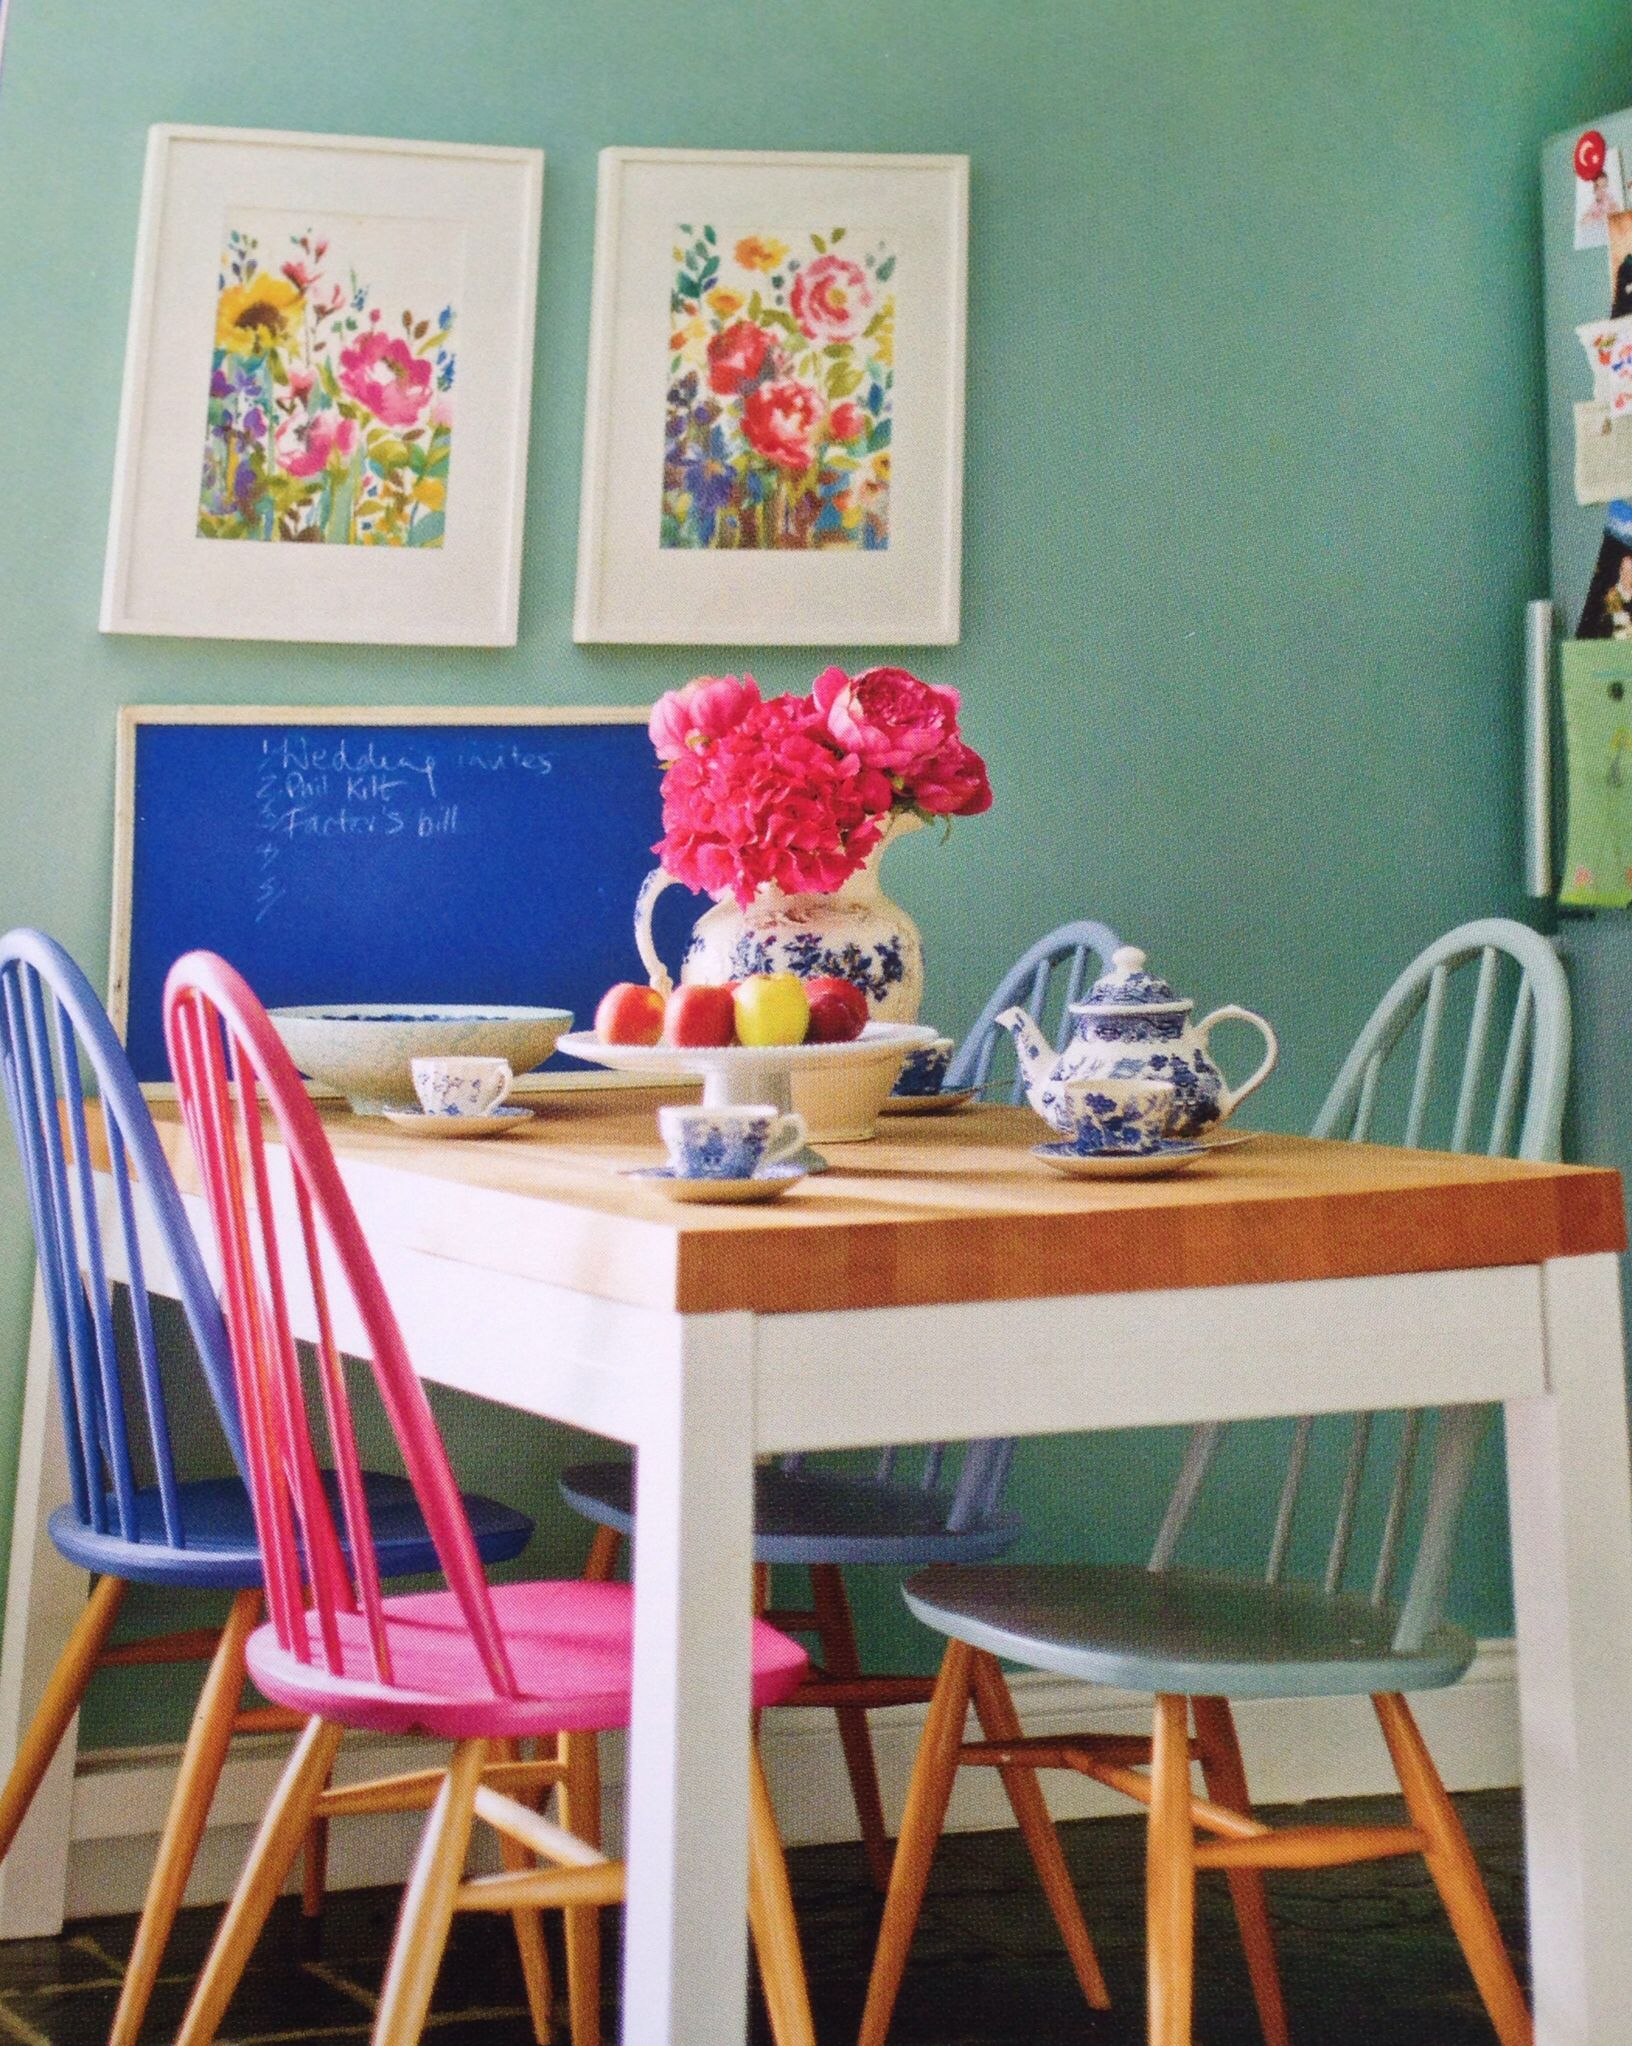 turquoise kitchen chairs Upcycled chairs recycled chairs painted dining chair